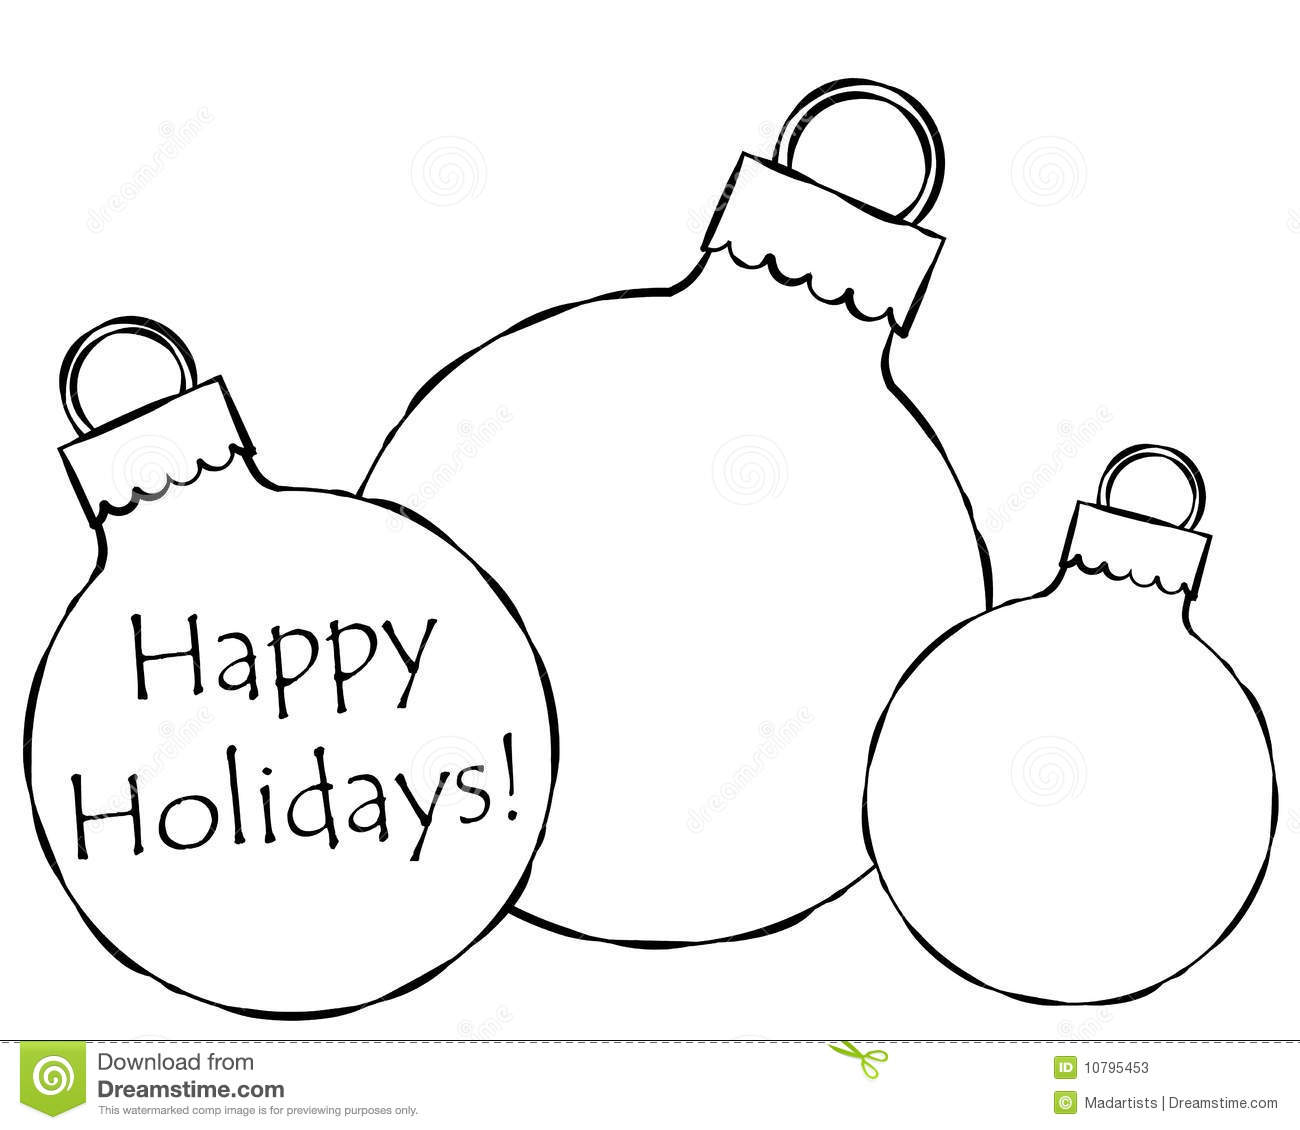 black and white illustration featuring Christmas ornaments - some ...